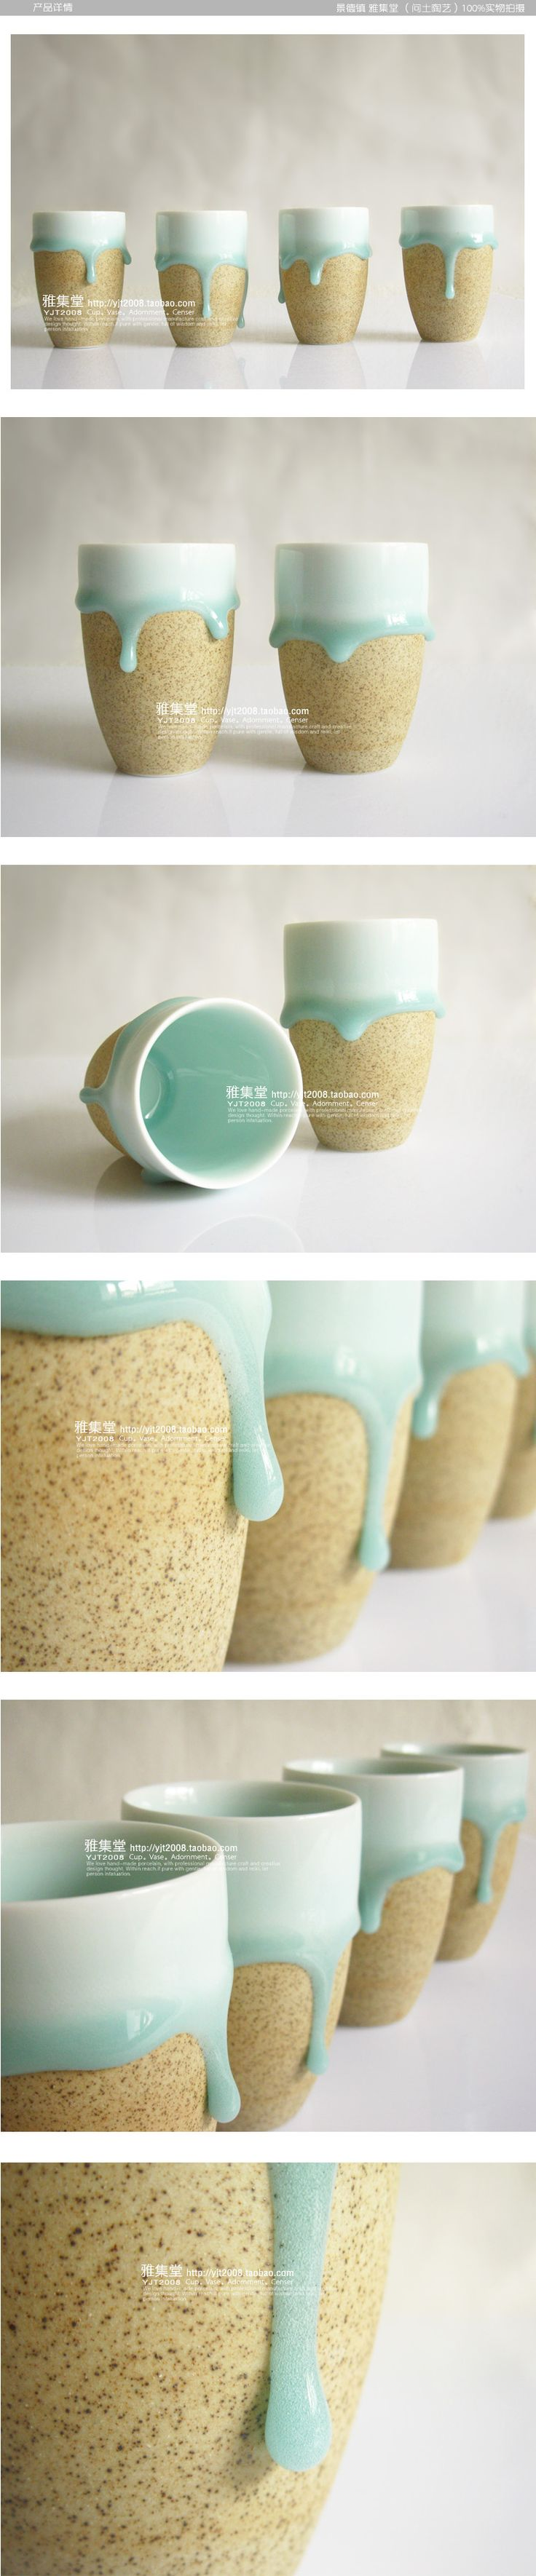 Ceramic cups by taobao - I love these! The beauty of them, the simplicity, the dual textures in your hand, the illusion of movement the drops create, the gentle earth tone colors. Of course they are by a Japanese artist...beautiful.